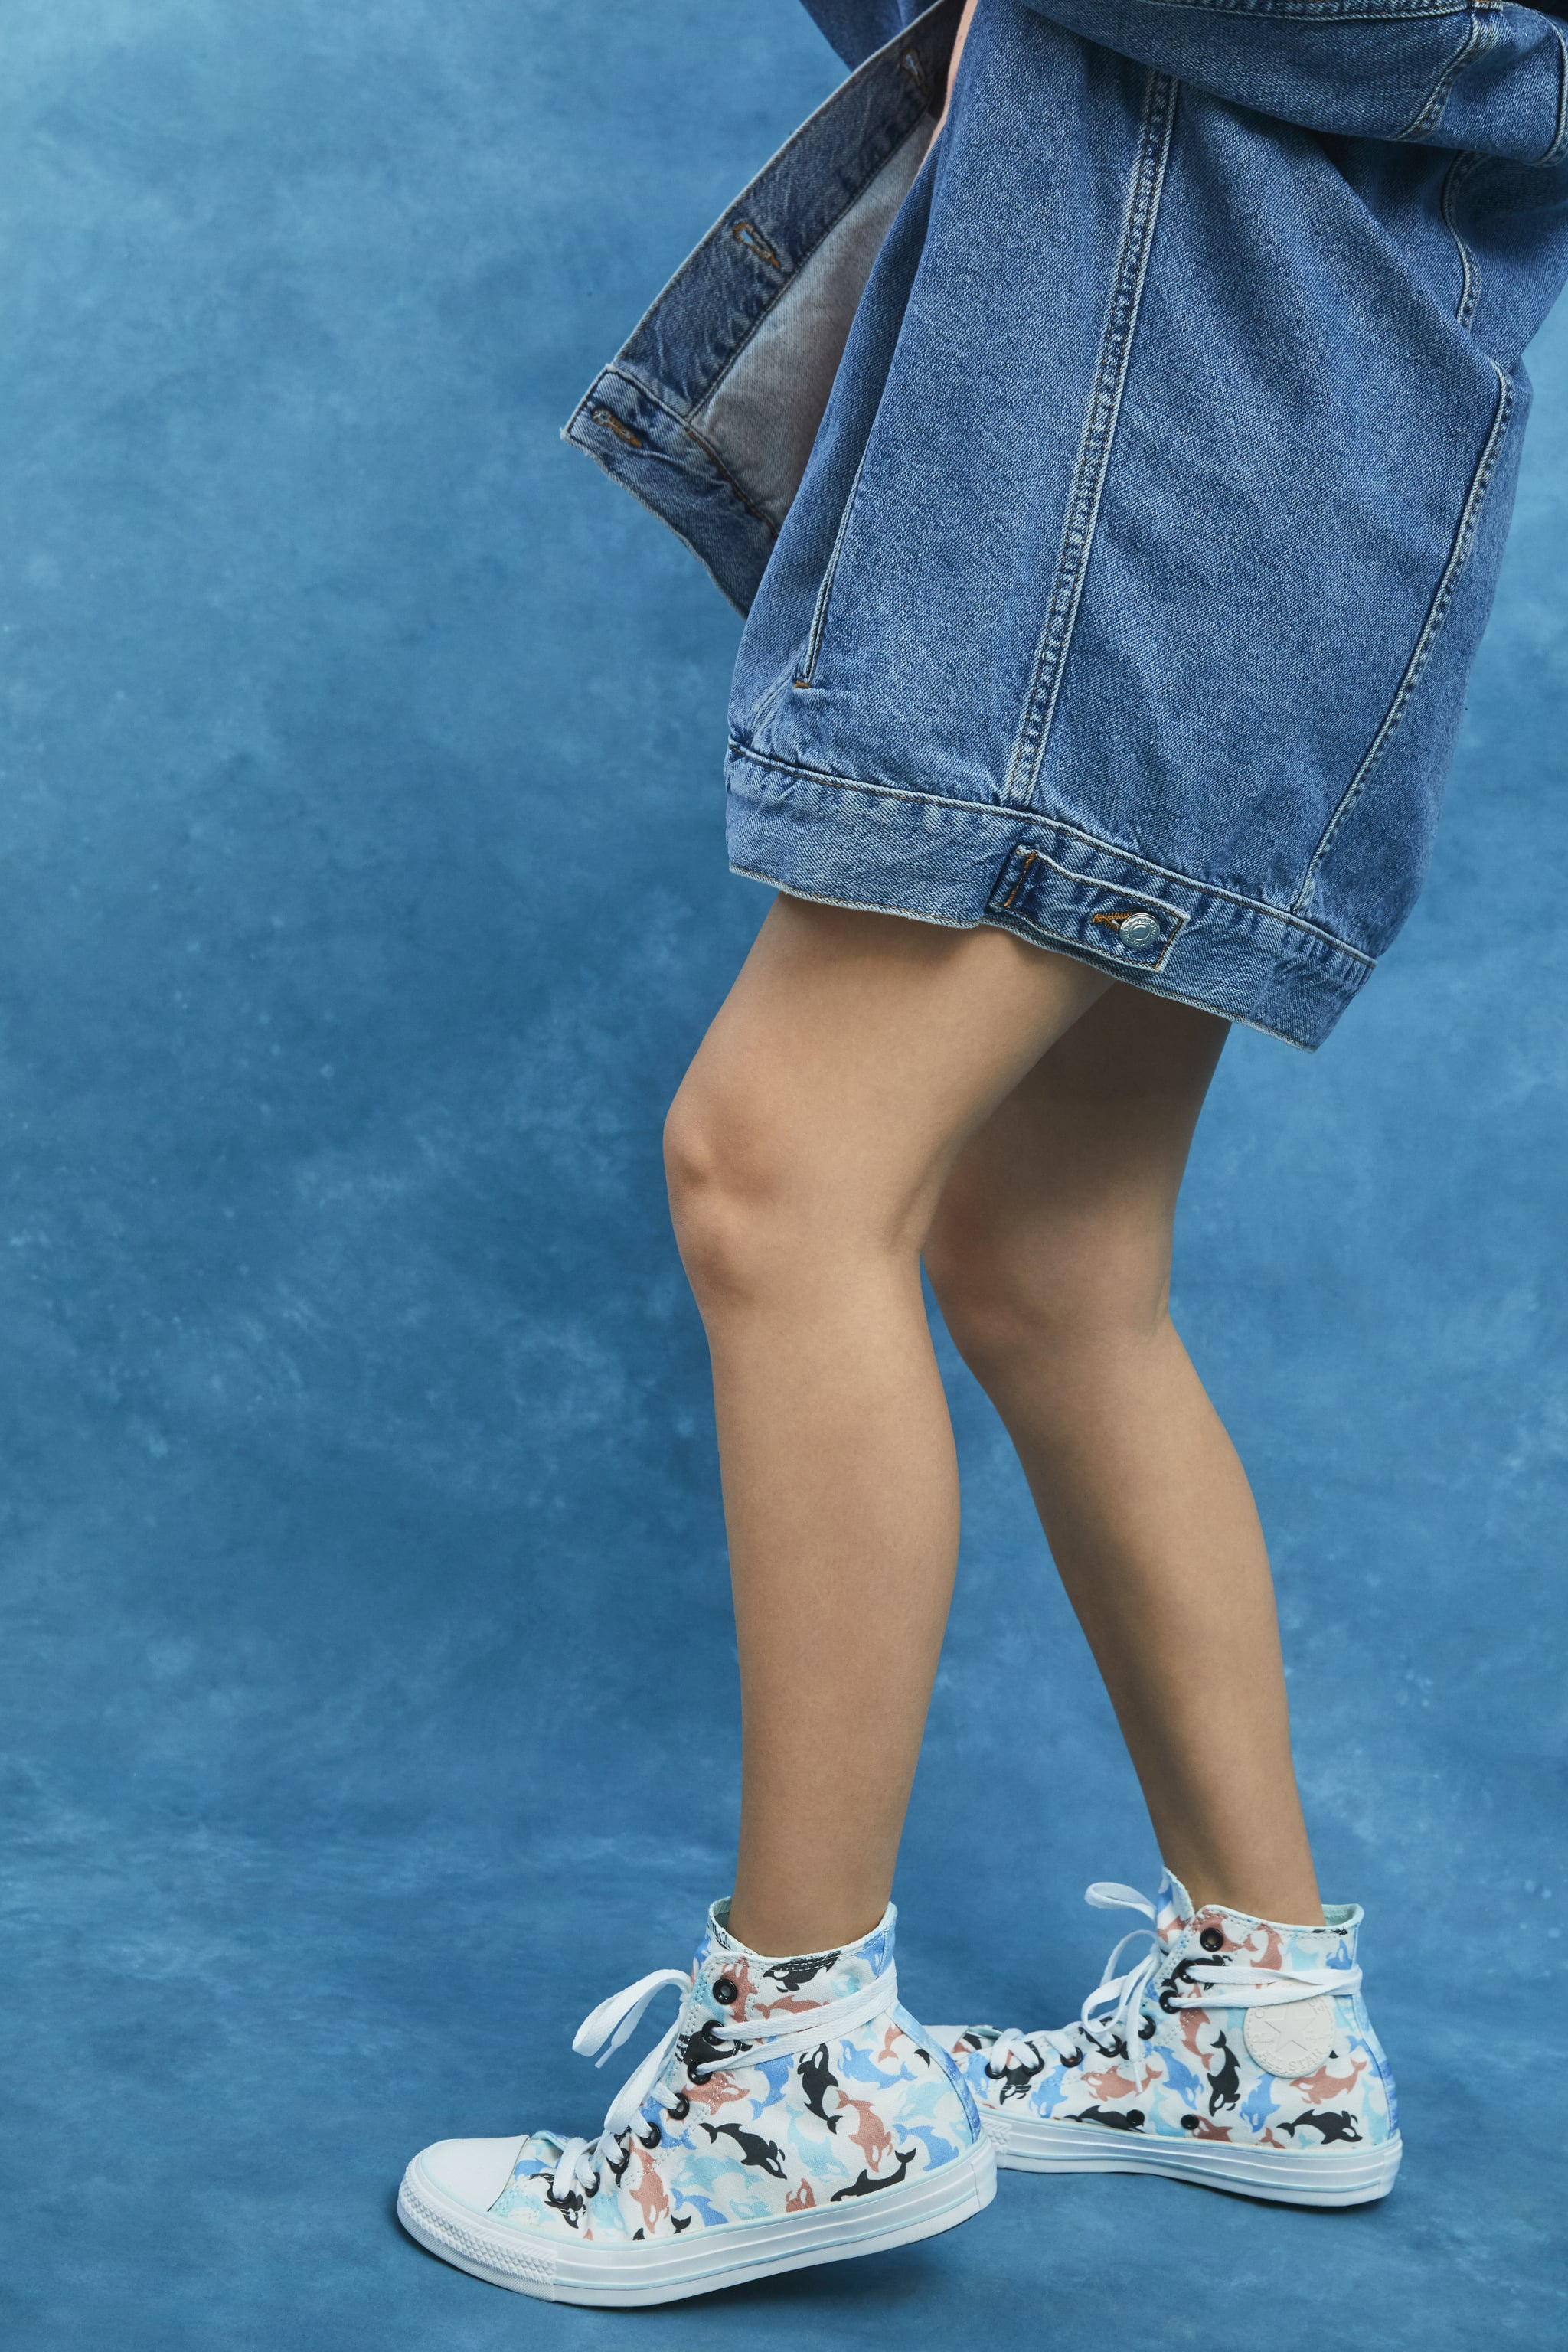 converse millie by you price